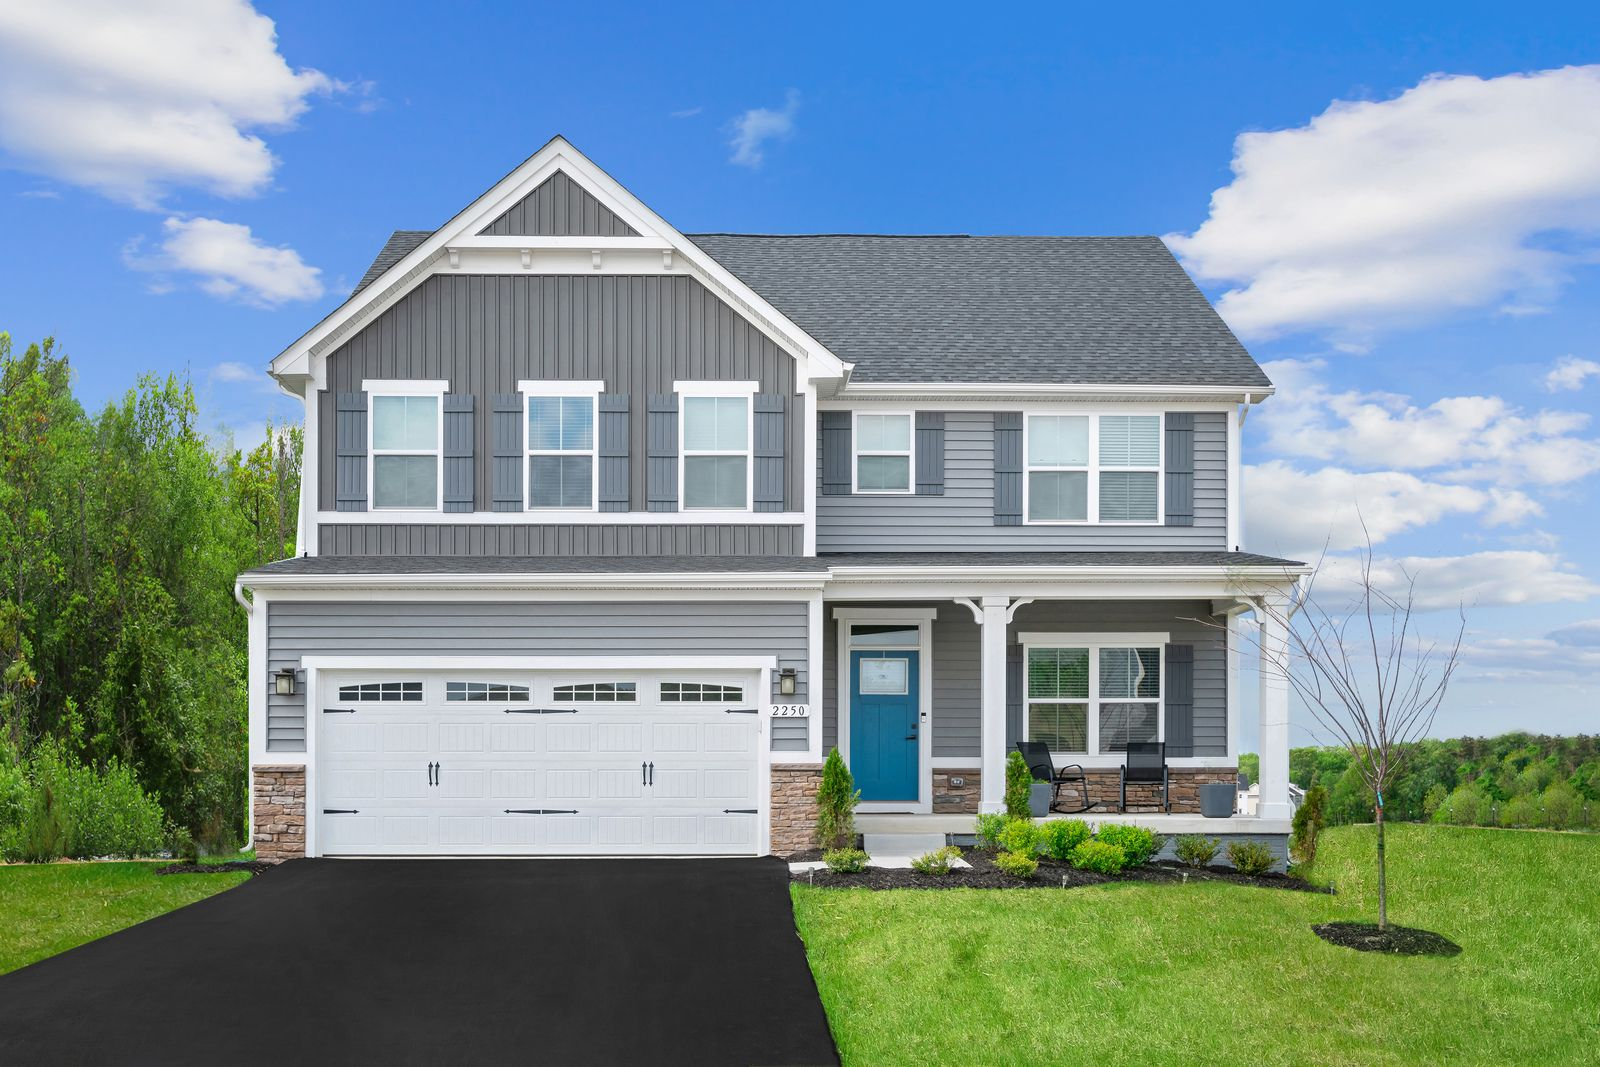 WELCOME TO LANDSDALE:Move up to your new single family home with our latest designs, included luxury finishes, and spacious backyards! Just minutes from I-270. Click here toschedule your appointment today.